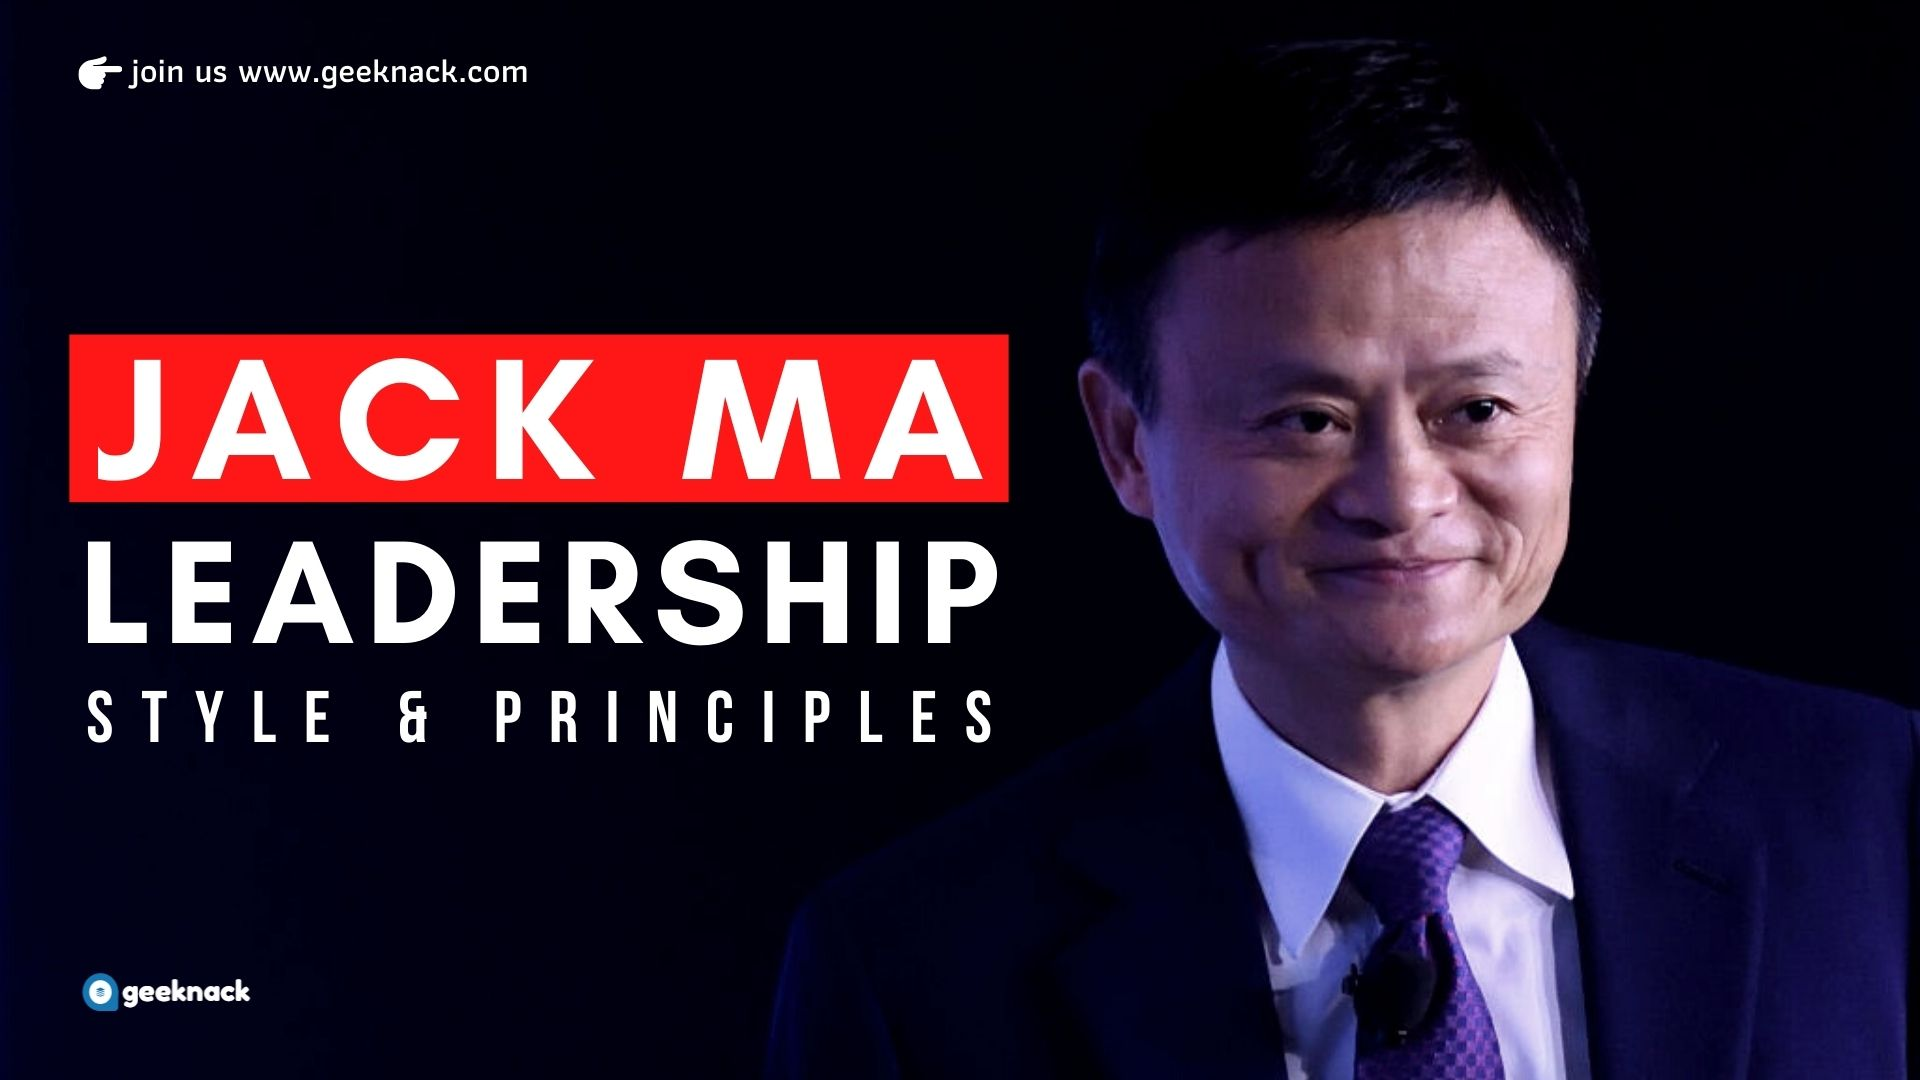 Jack Ma - Leadership Style & Principles cover